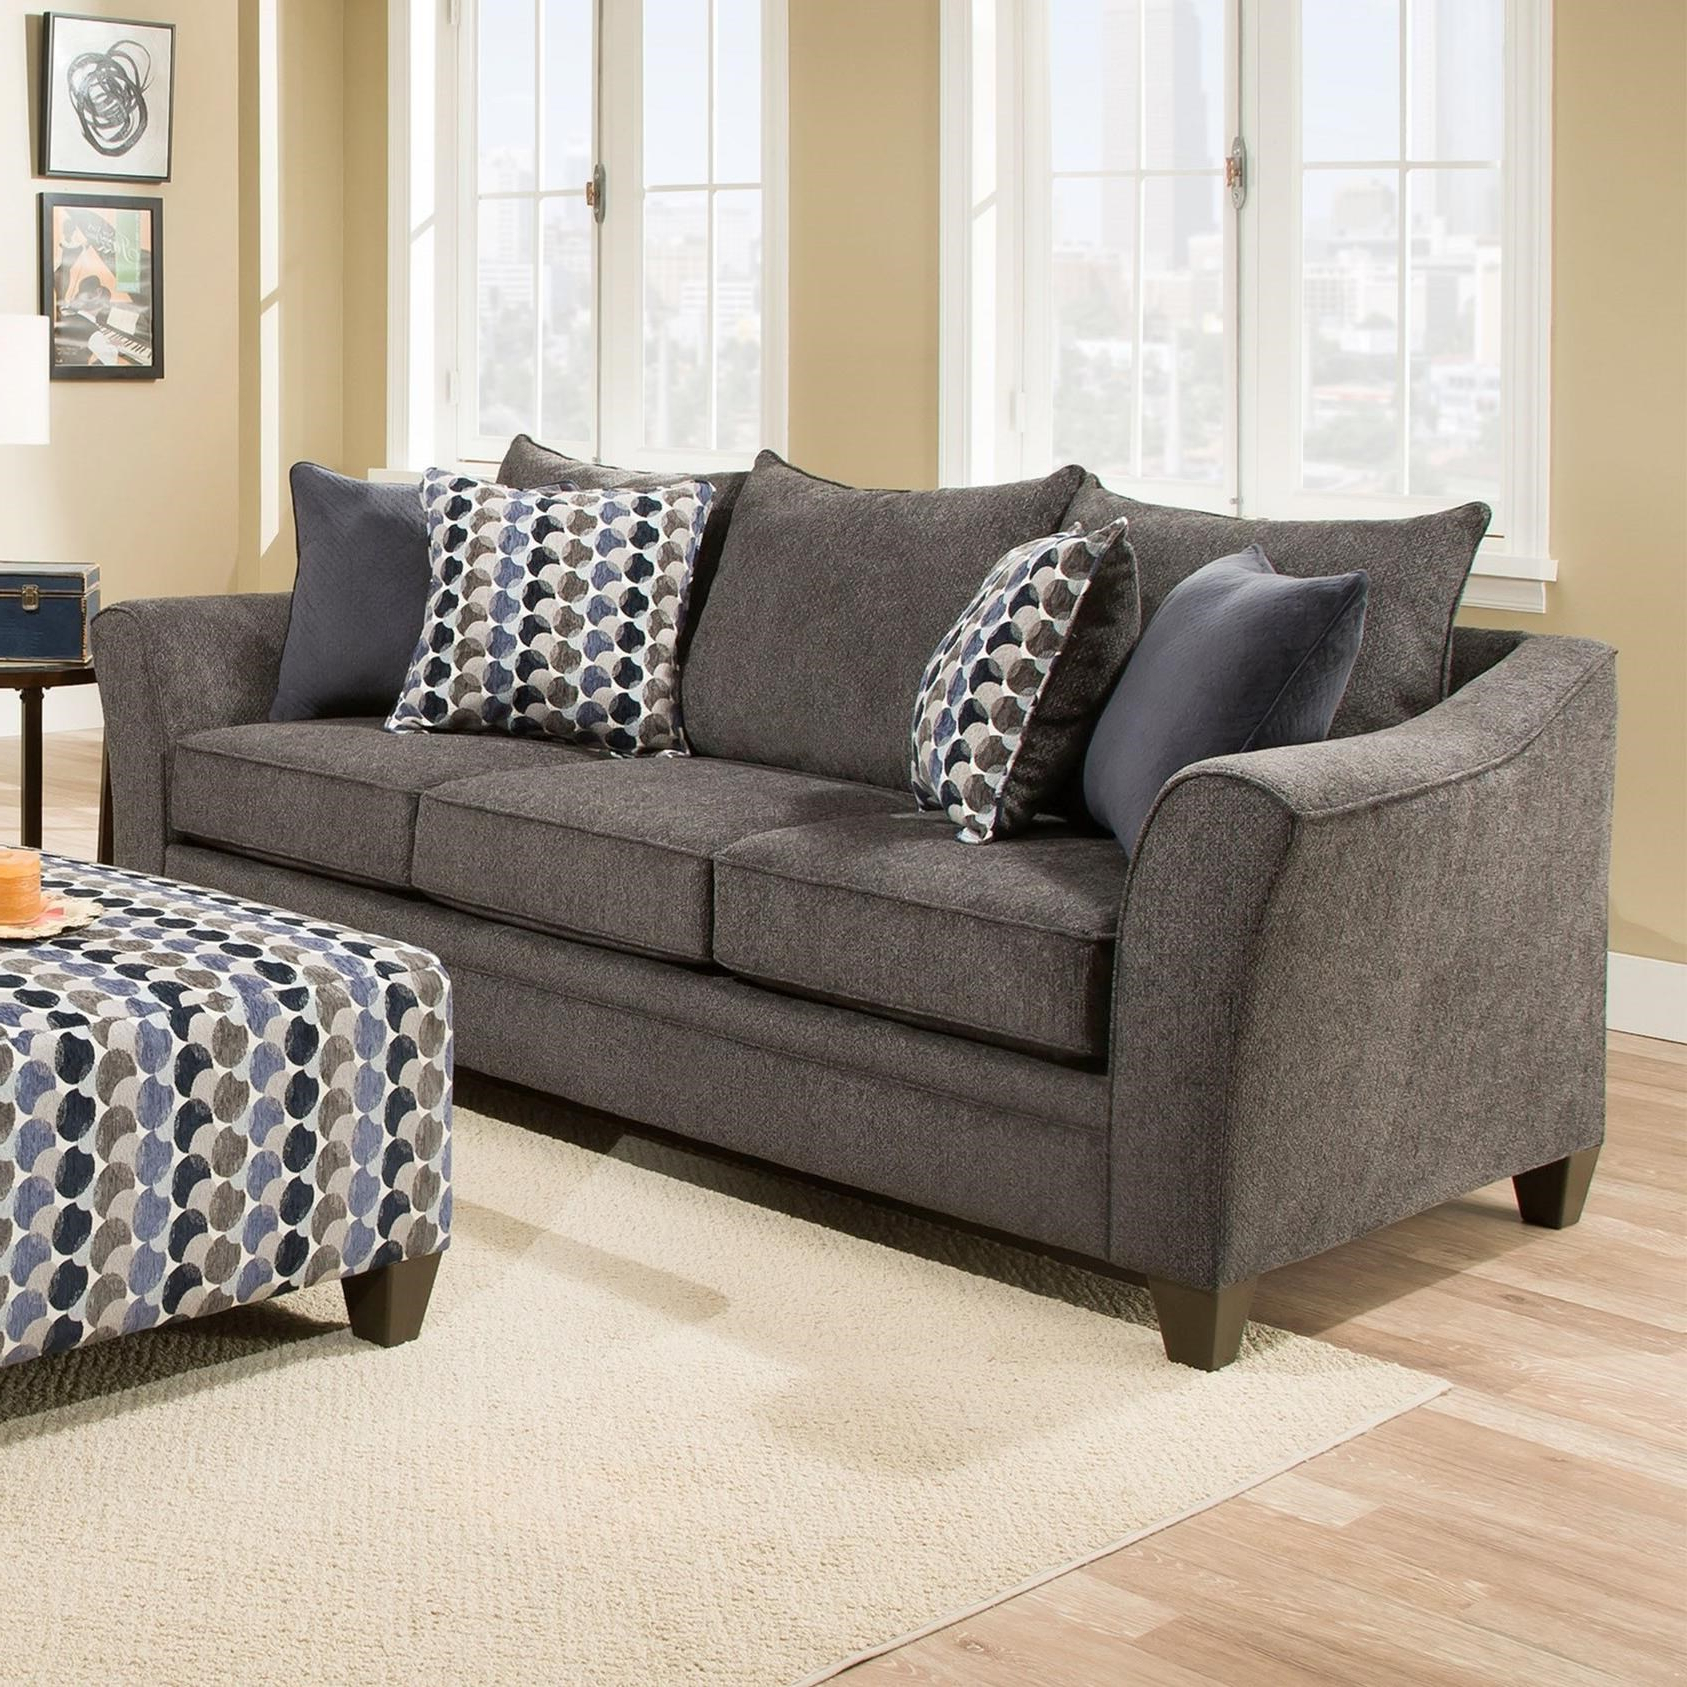 2019 Kiara Sofa Chairs Throughout Umber Kiara 6485Sofa Transitional Sofa With Flared Arms (Gallery 10 of 20)